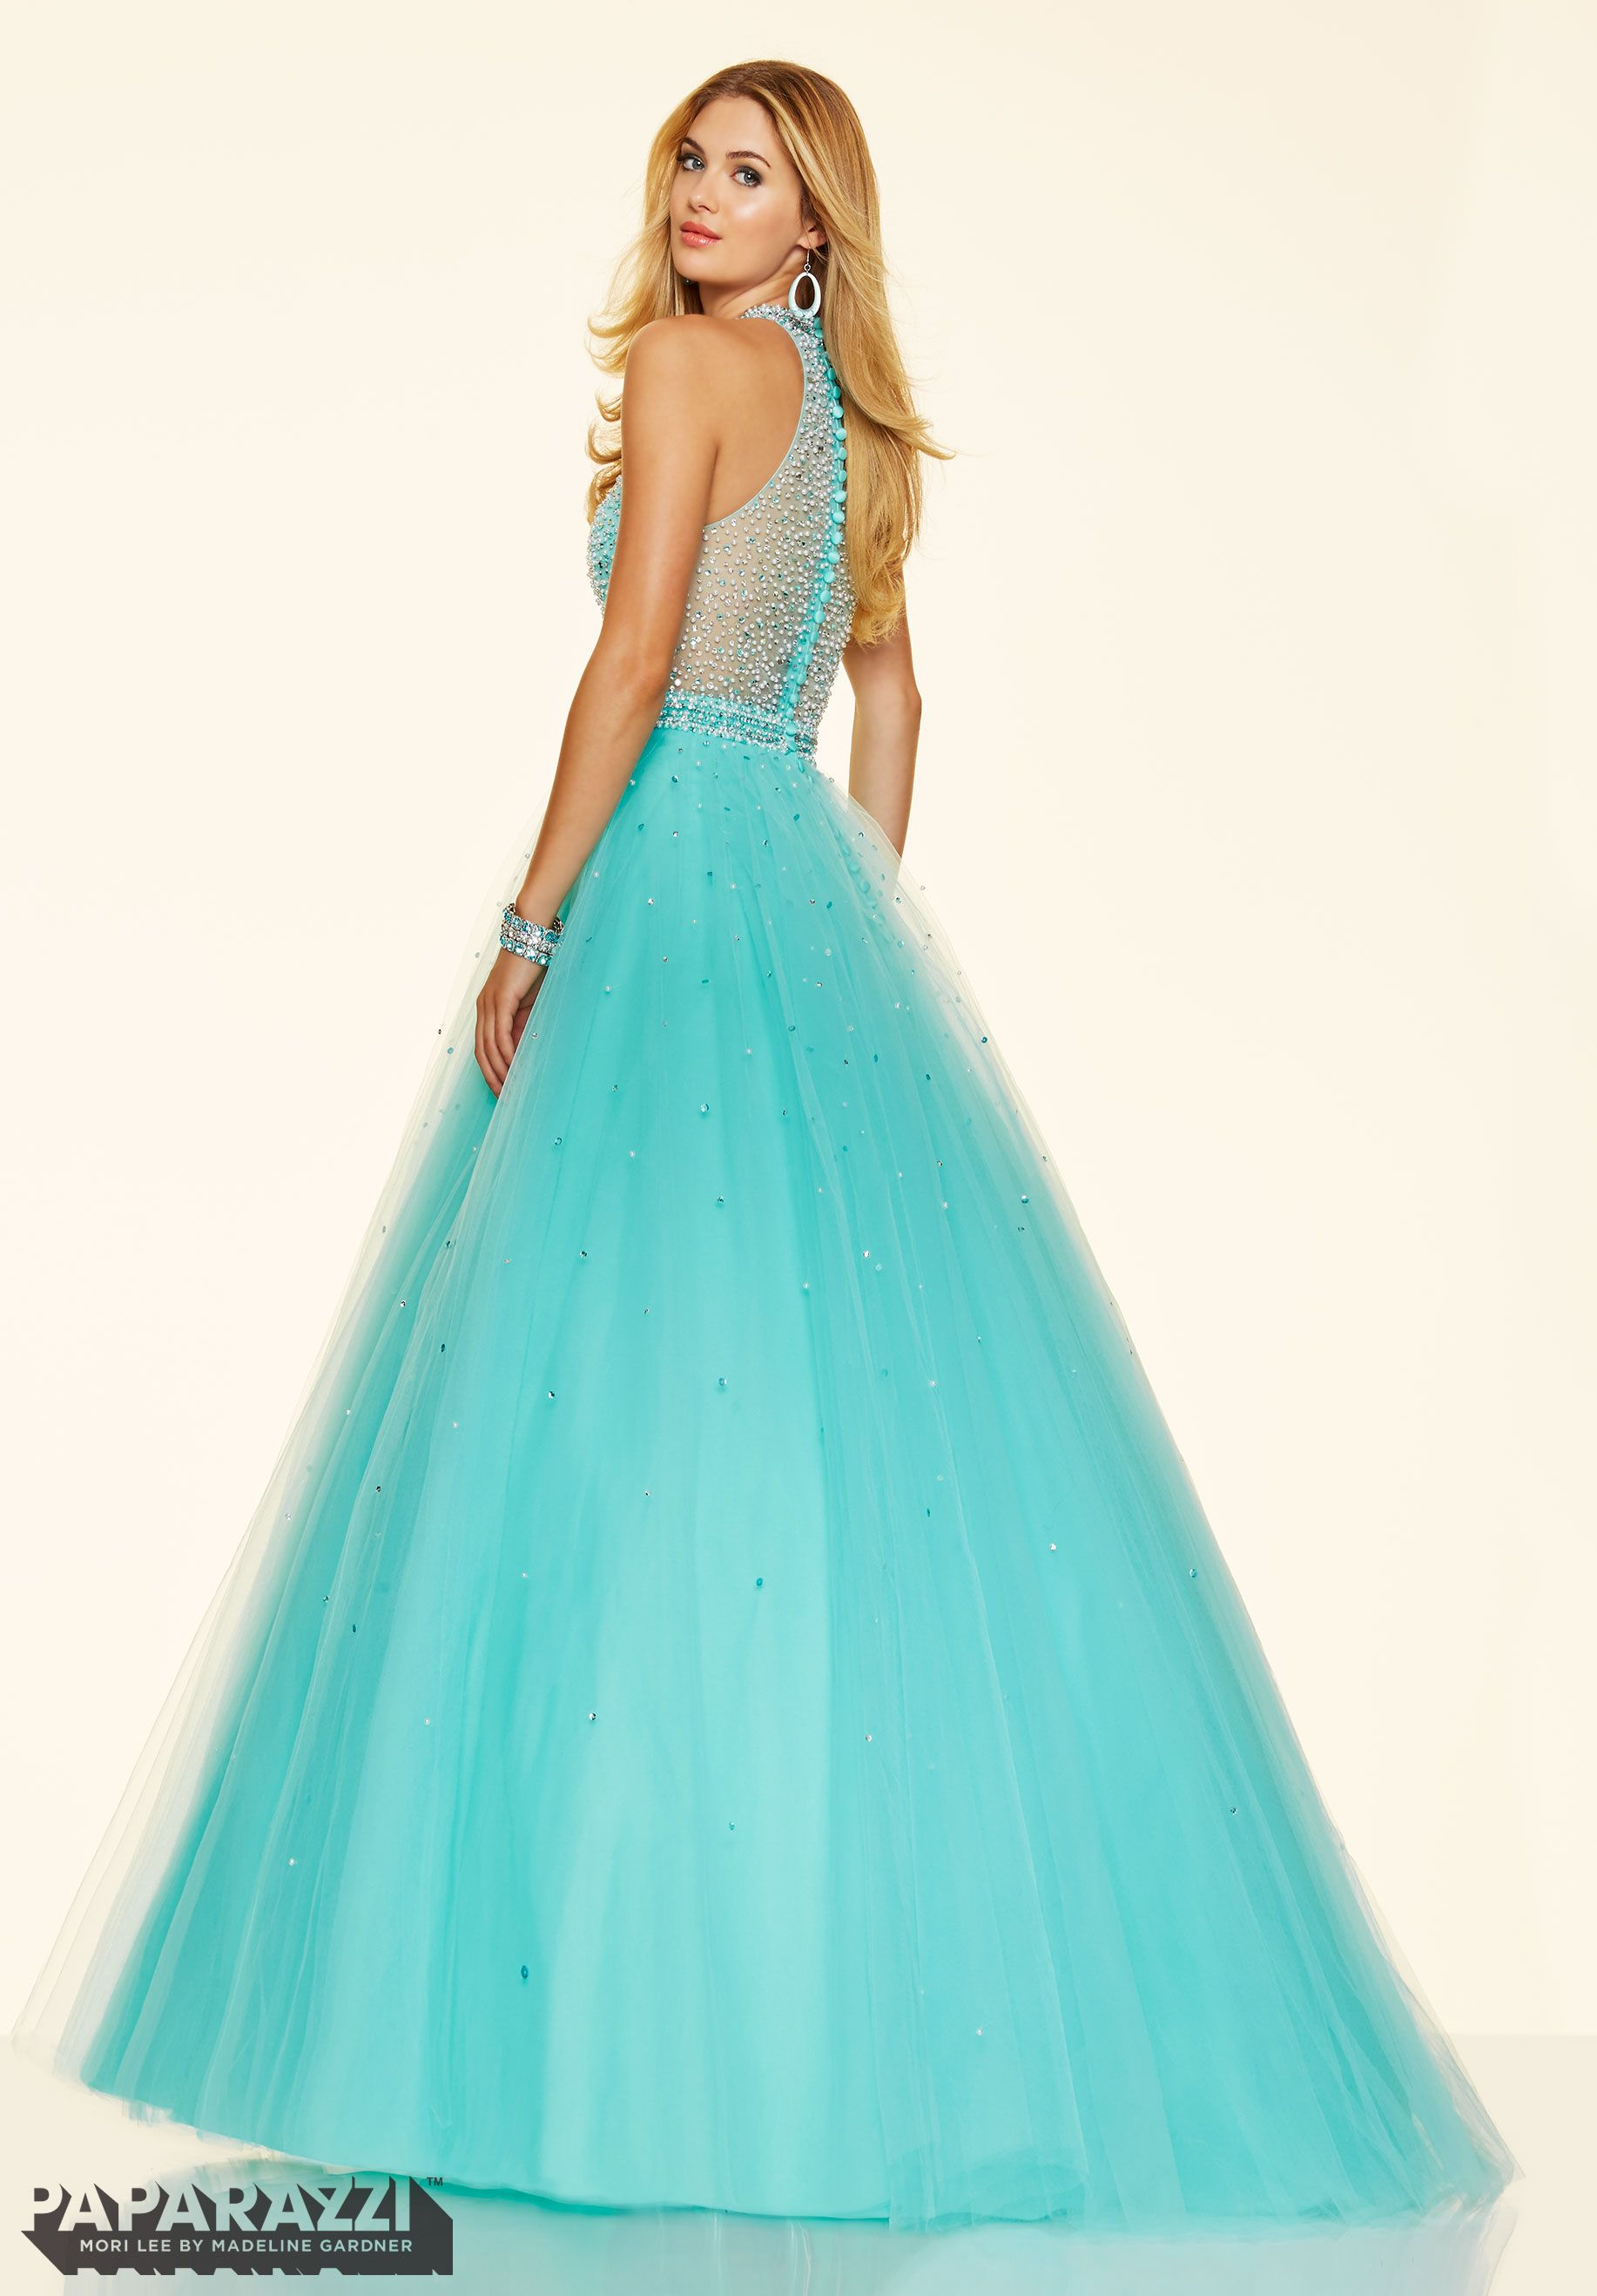 Prom Dresses by Paparazzi Prom - Dress Style 98096 | PROM ...